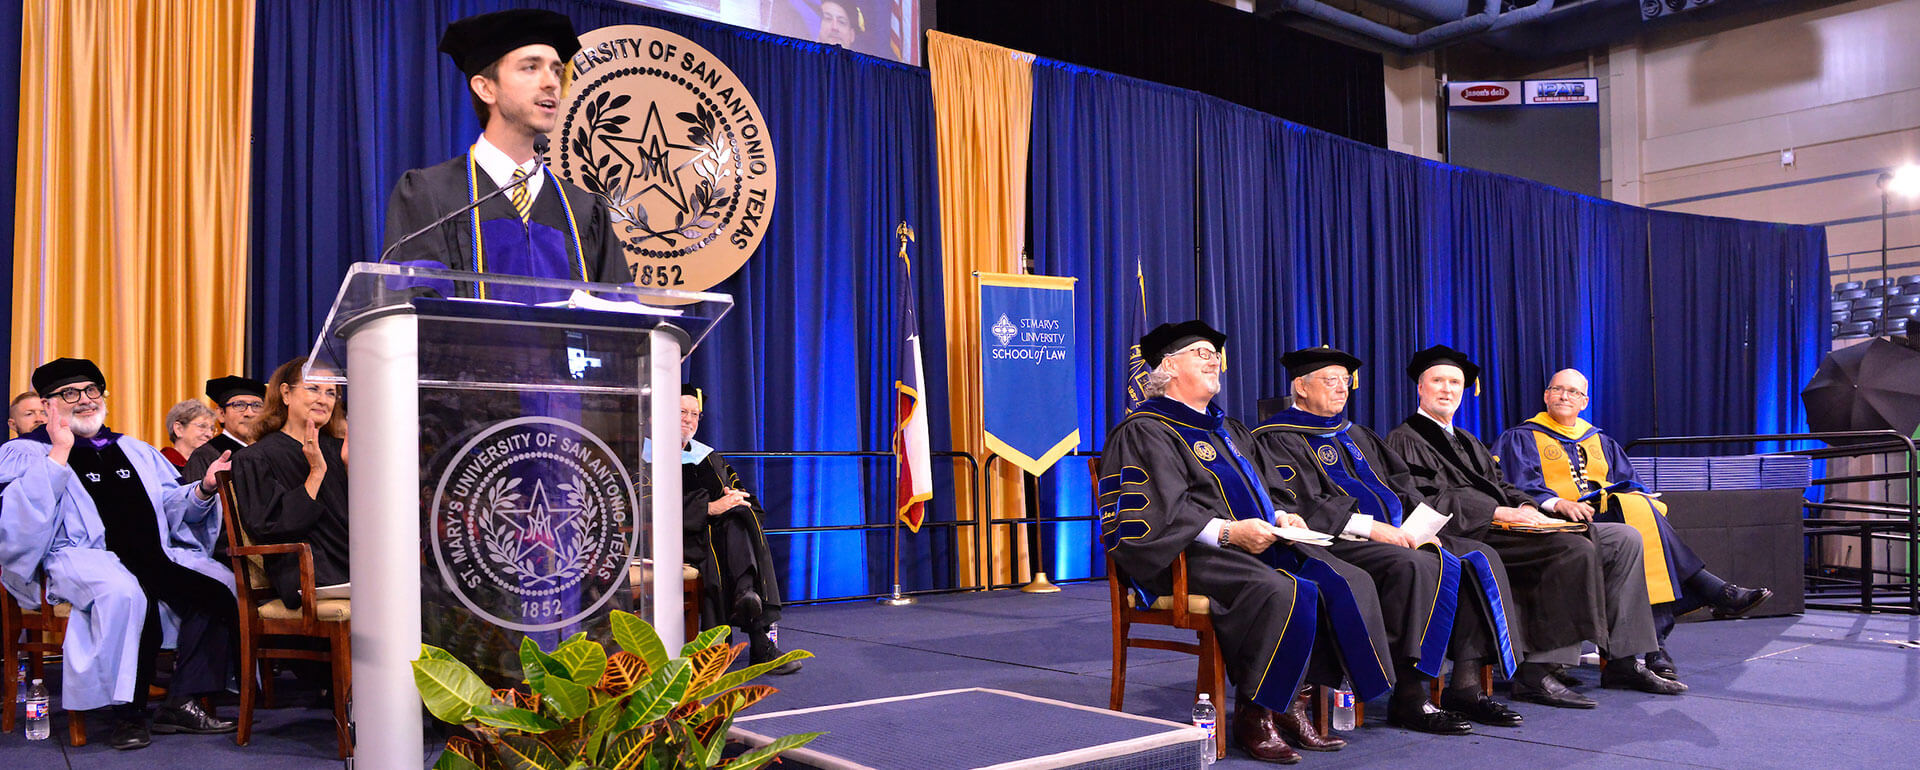 John Brown speaks at the 2019 Law Commencement.